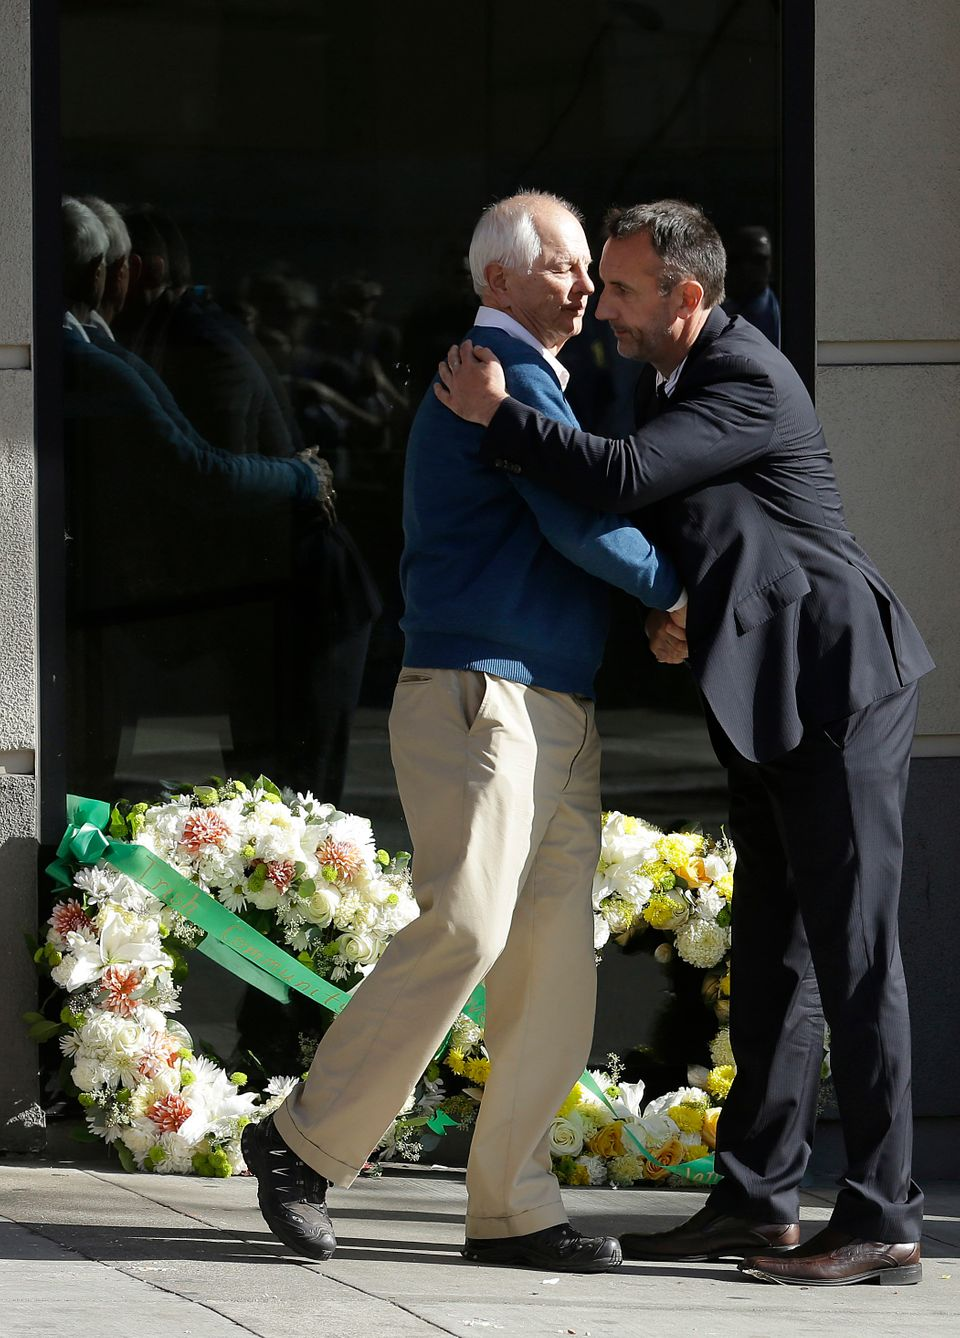 Berkeley Mayor Tom Bates, left, hugs Philip Grant, Consul General of Ireland of the Western United States, after placing wrea